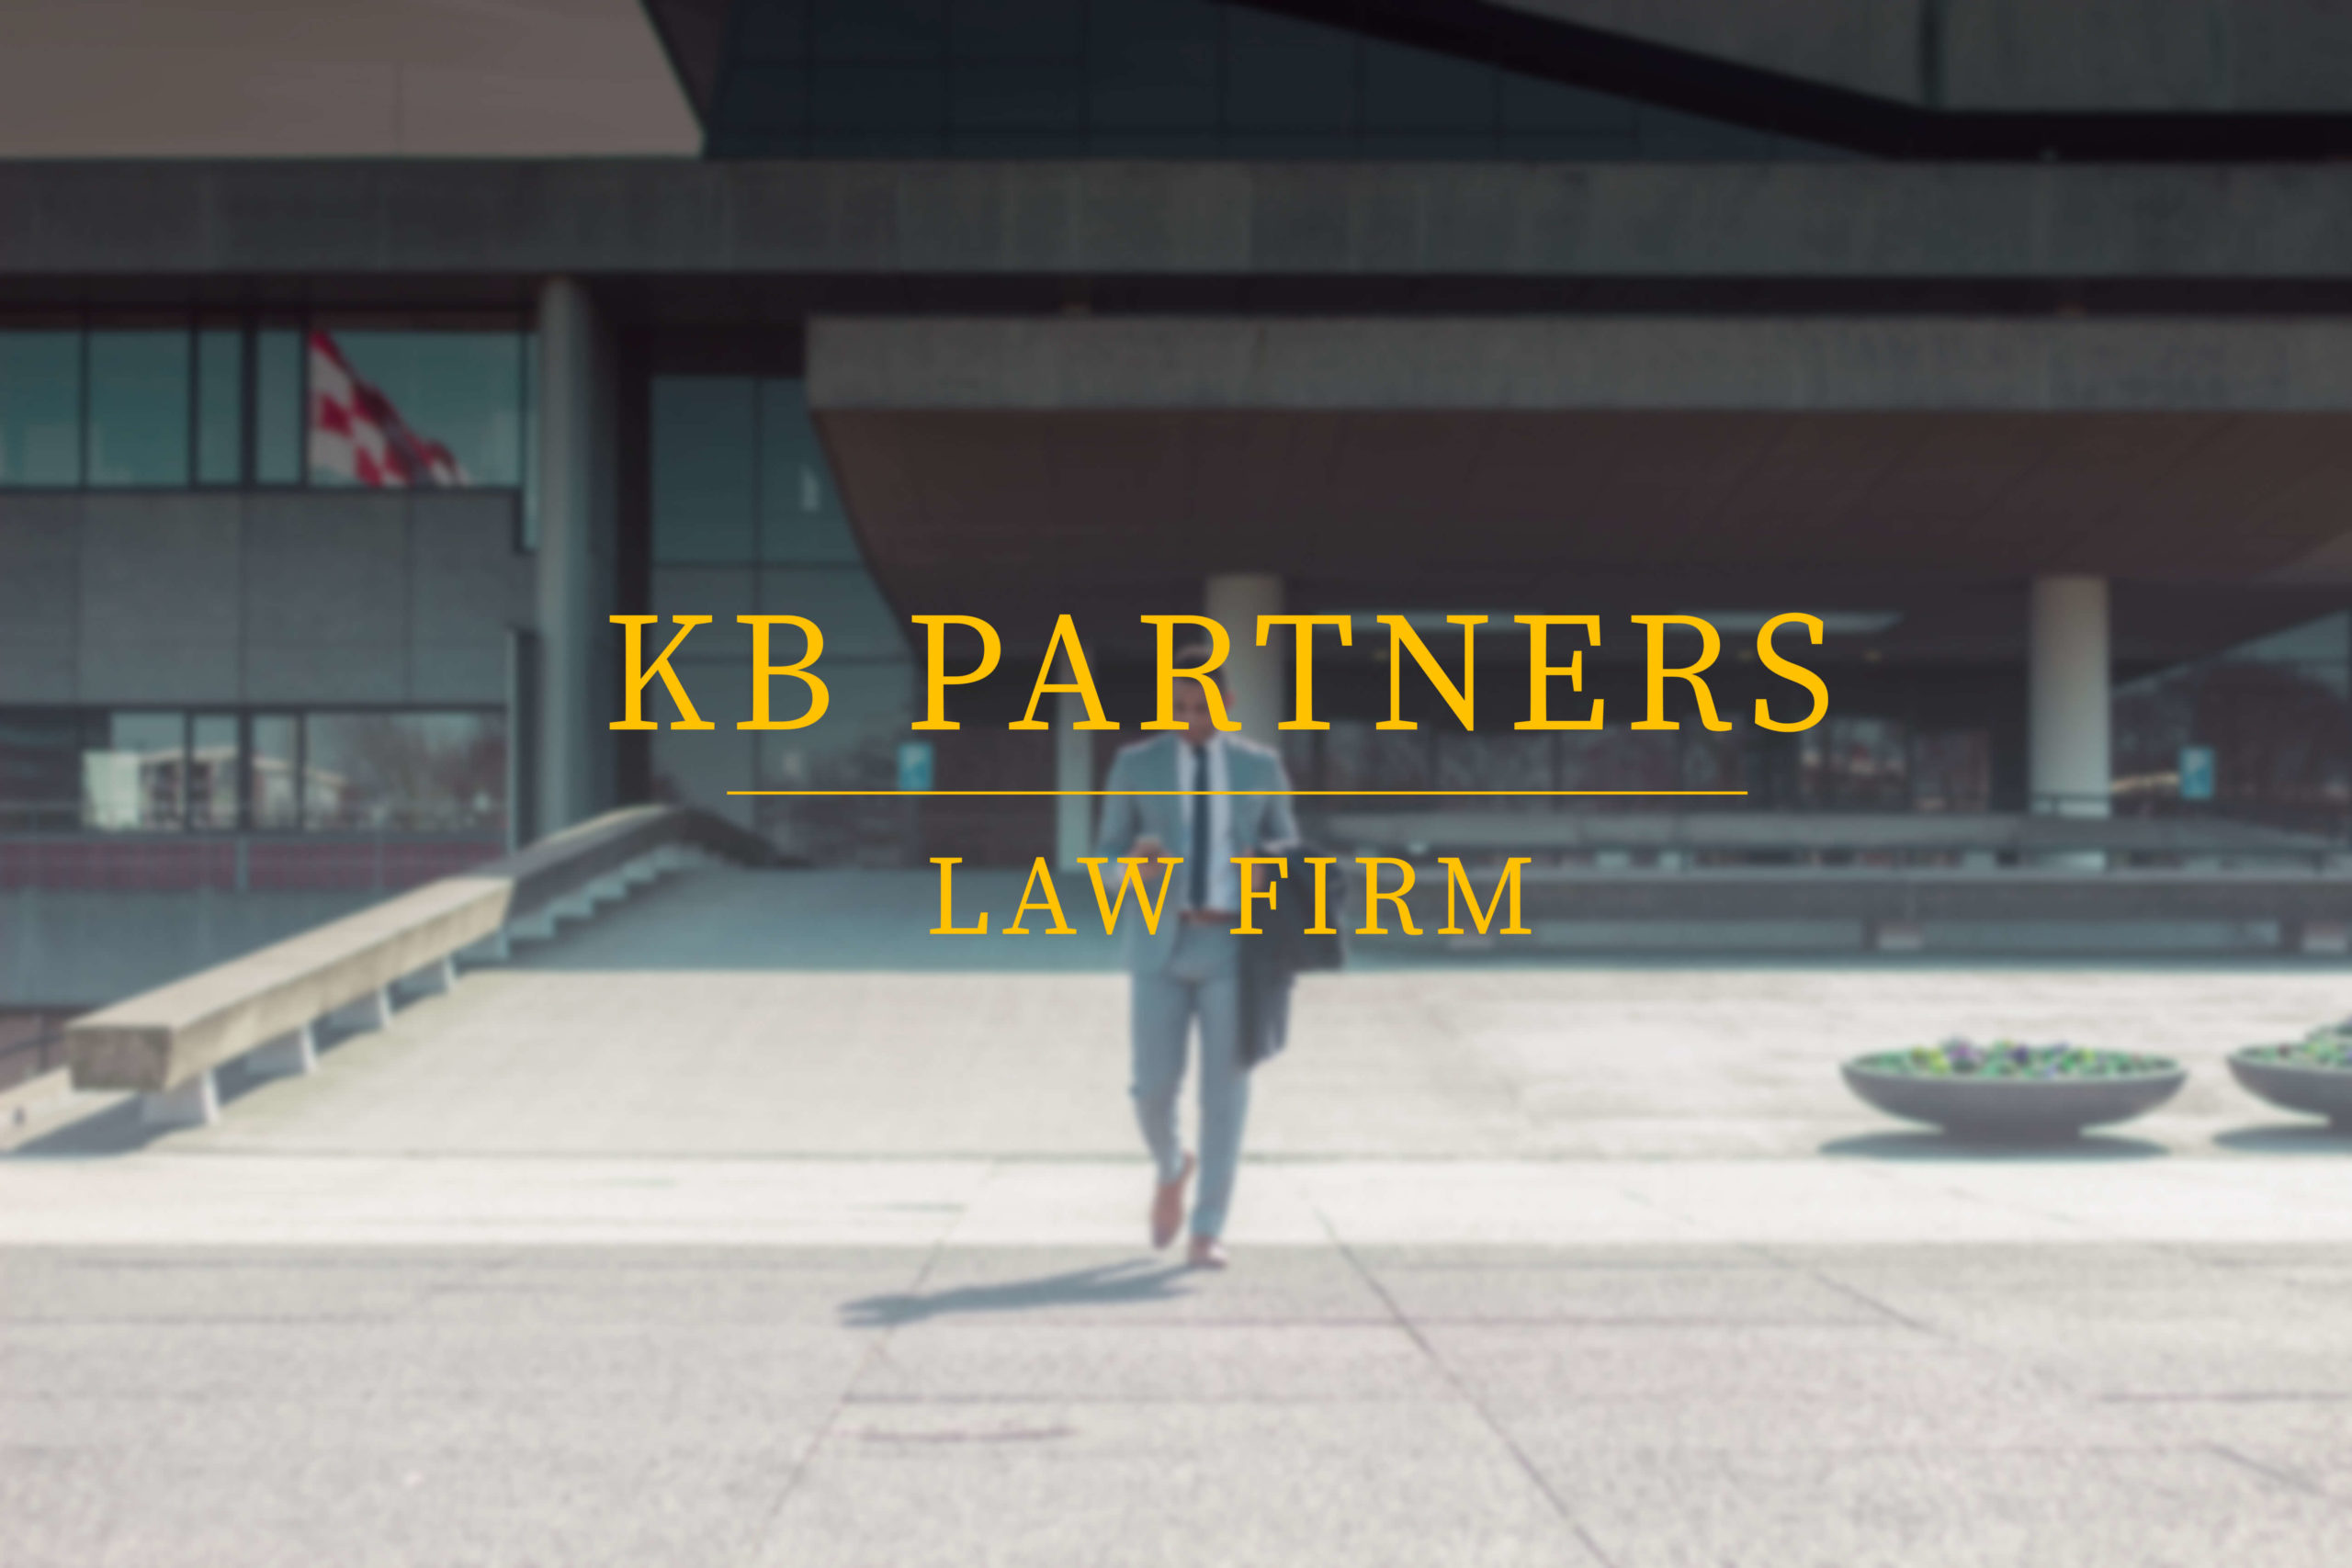 Corporate site for KB Partners